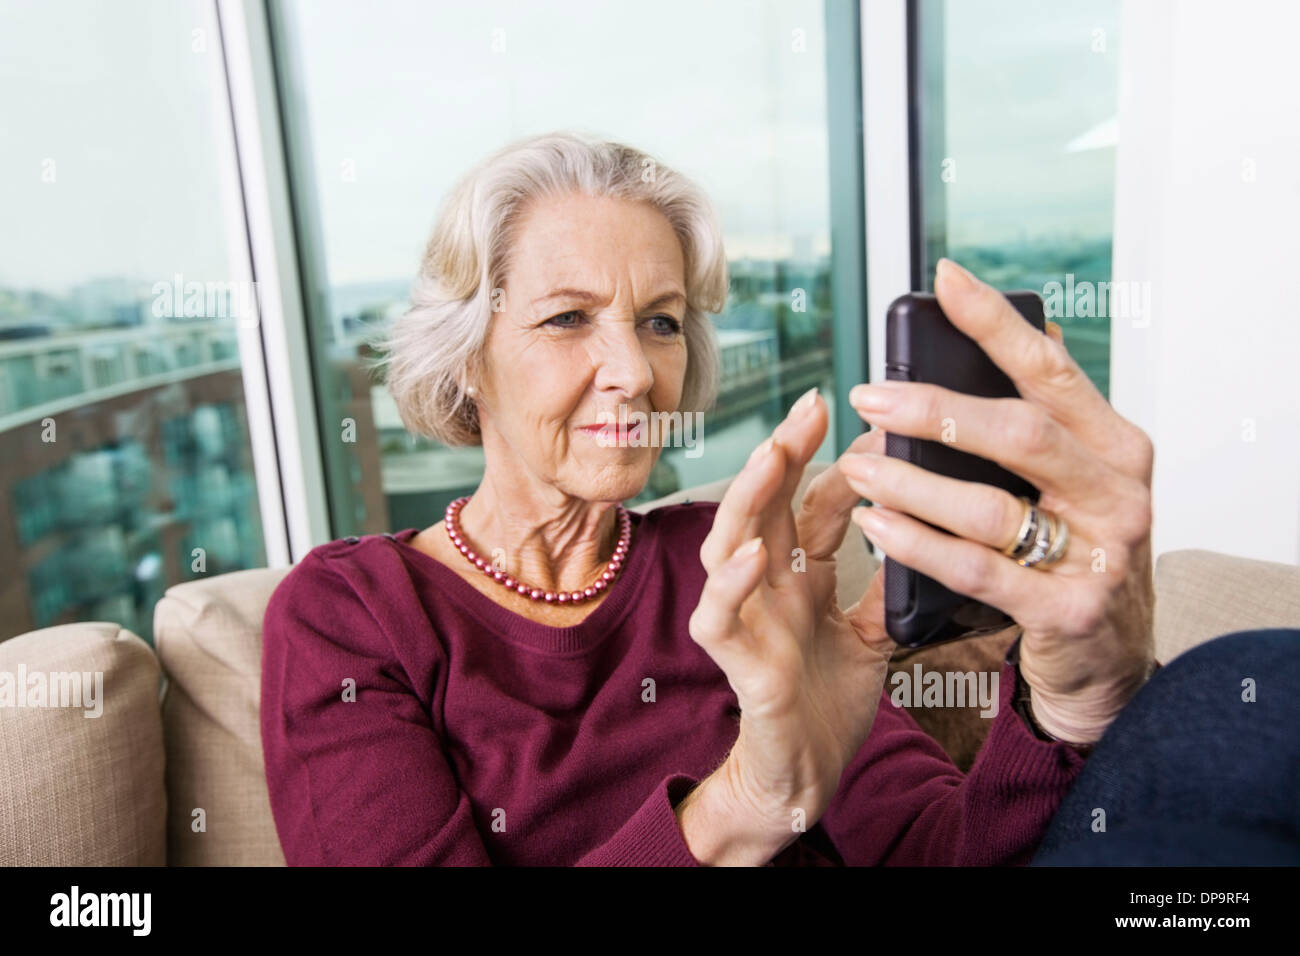 Smiling senior woman text messaging on smart phone at home - Stock Image